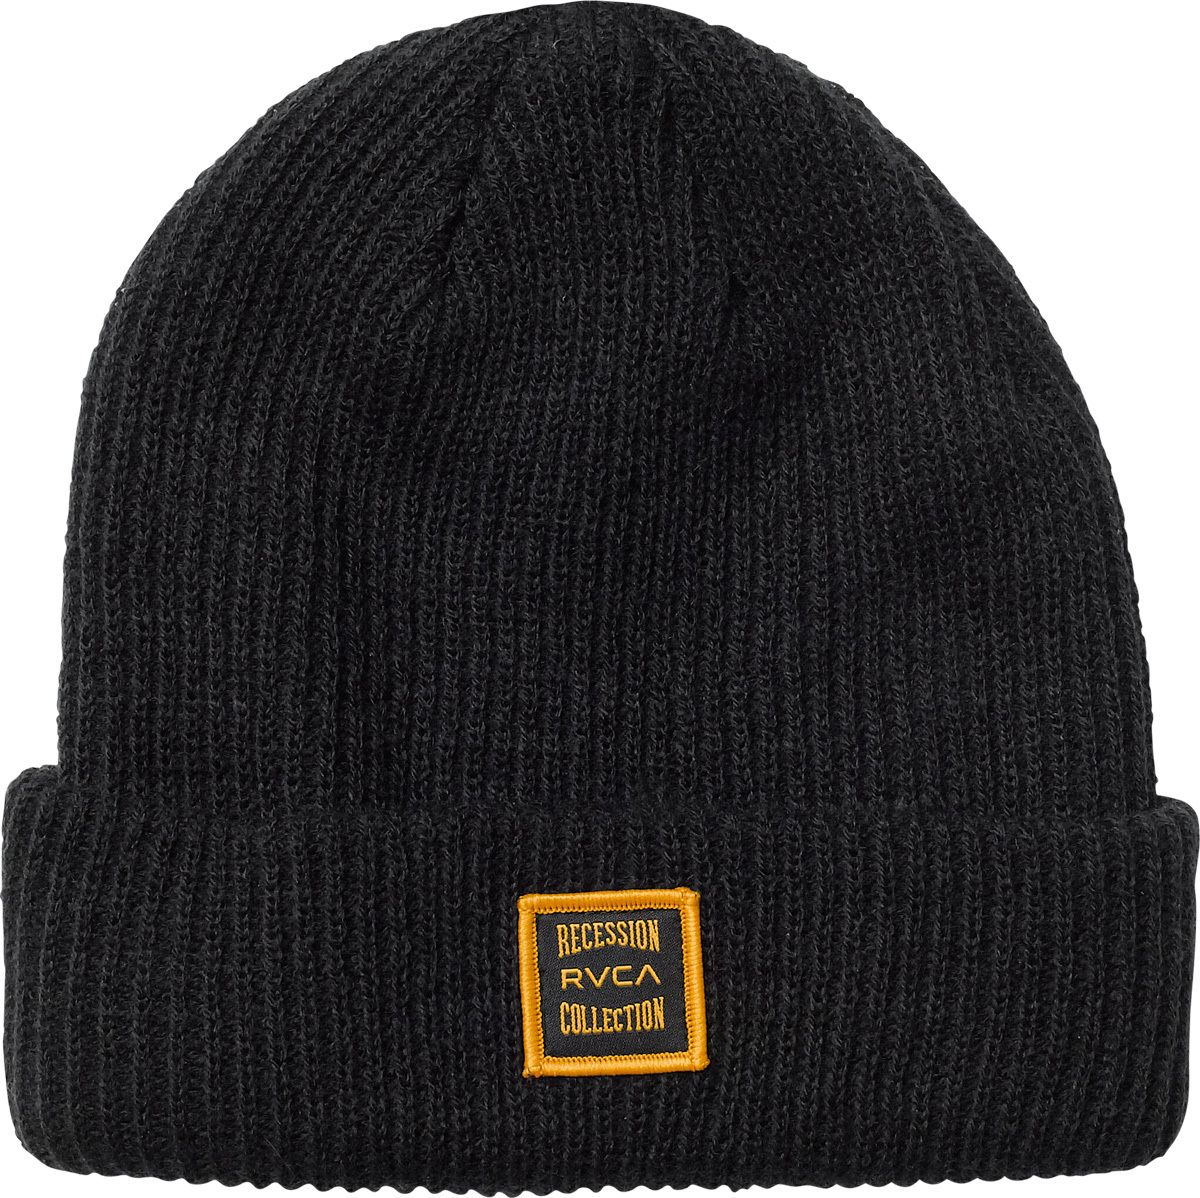 a3845fd0889 Recession Collection Beanie